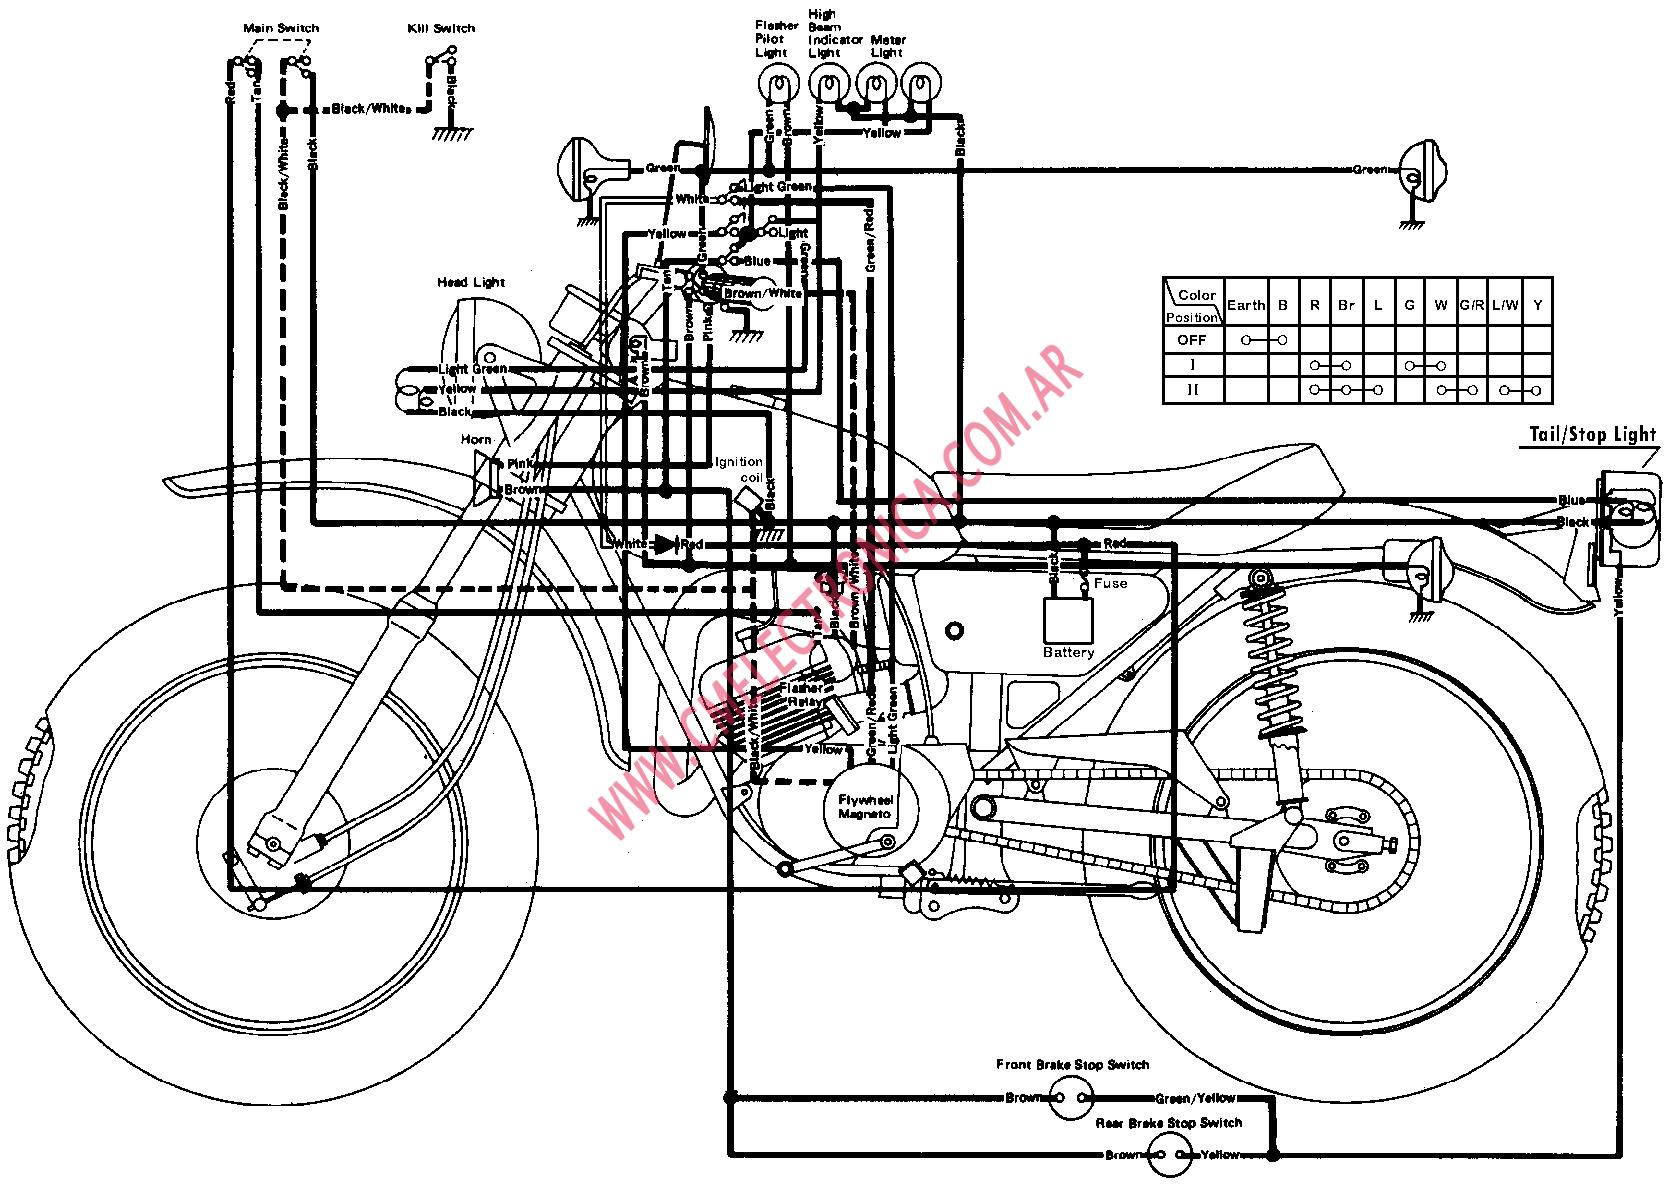 1979 Yamaha 250 Wiring Diagram Guide And Troubleshooting Of Xs1100 Free Picture Schematic Dt 125 Diagrams Schemes 82 Xj650 Xs750